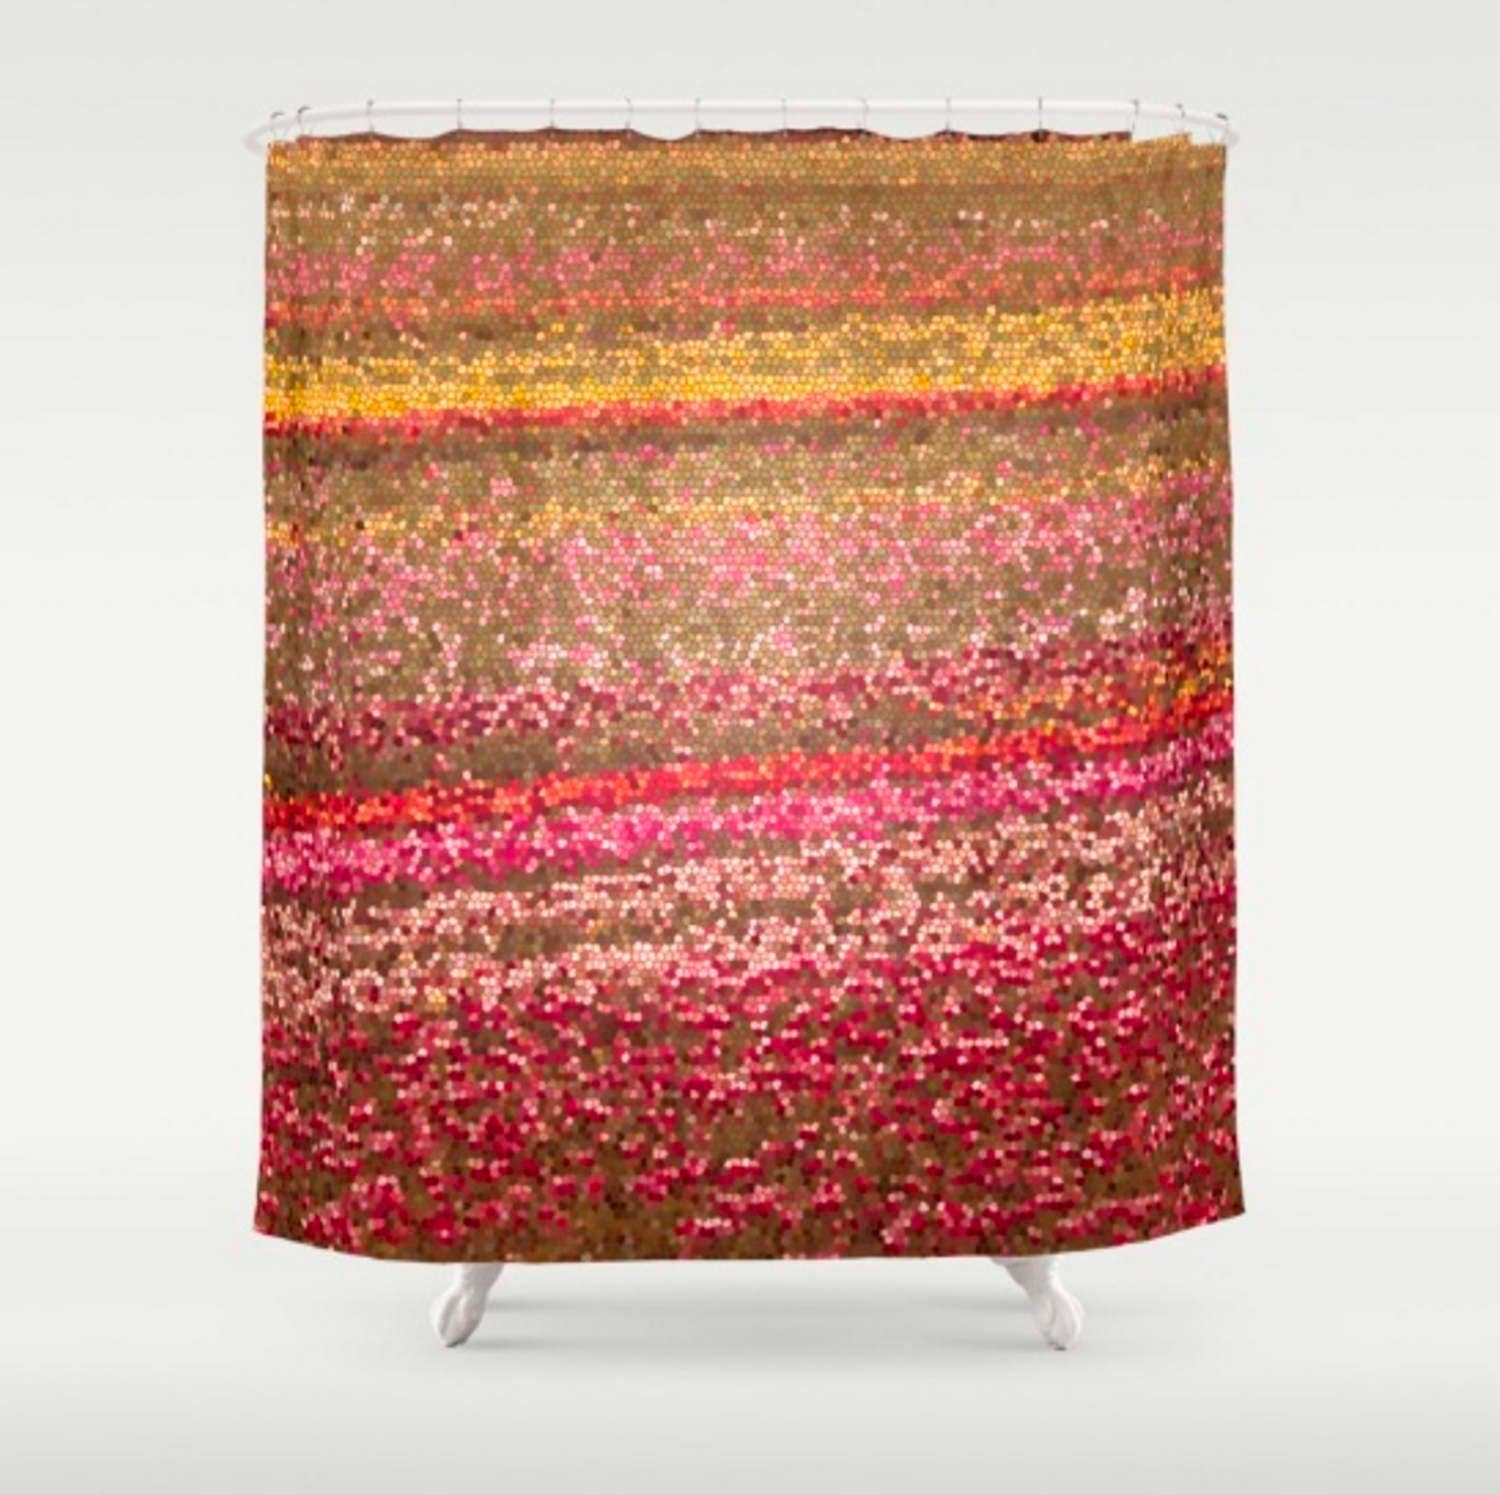 Colorful Shower Curtain Abstract Shower Curtain Red Orange